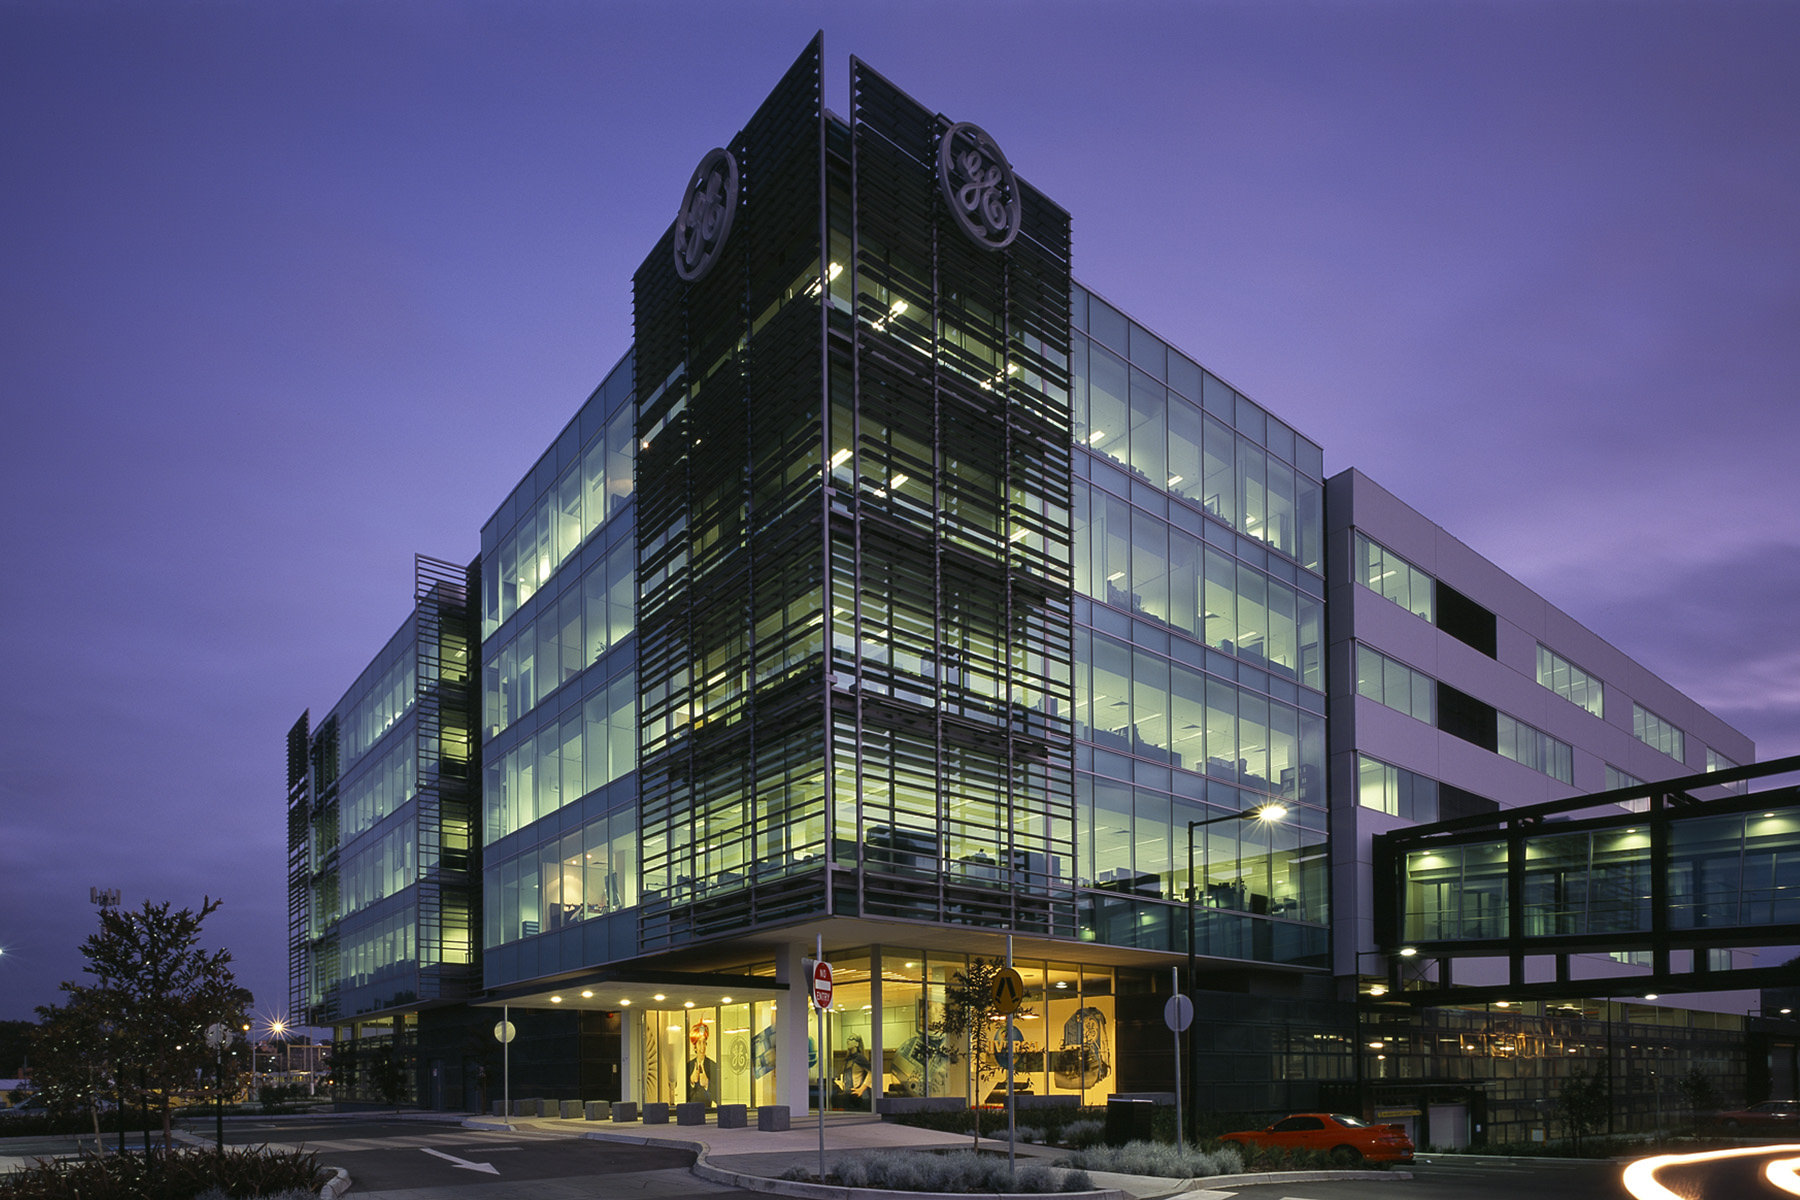 GE Money, Botanicca Corporate Park